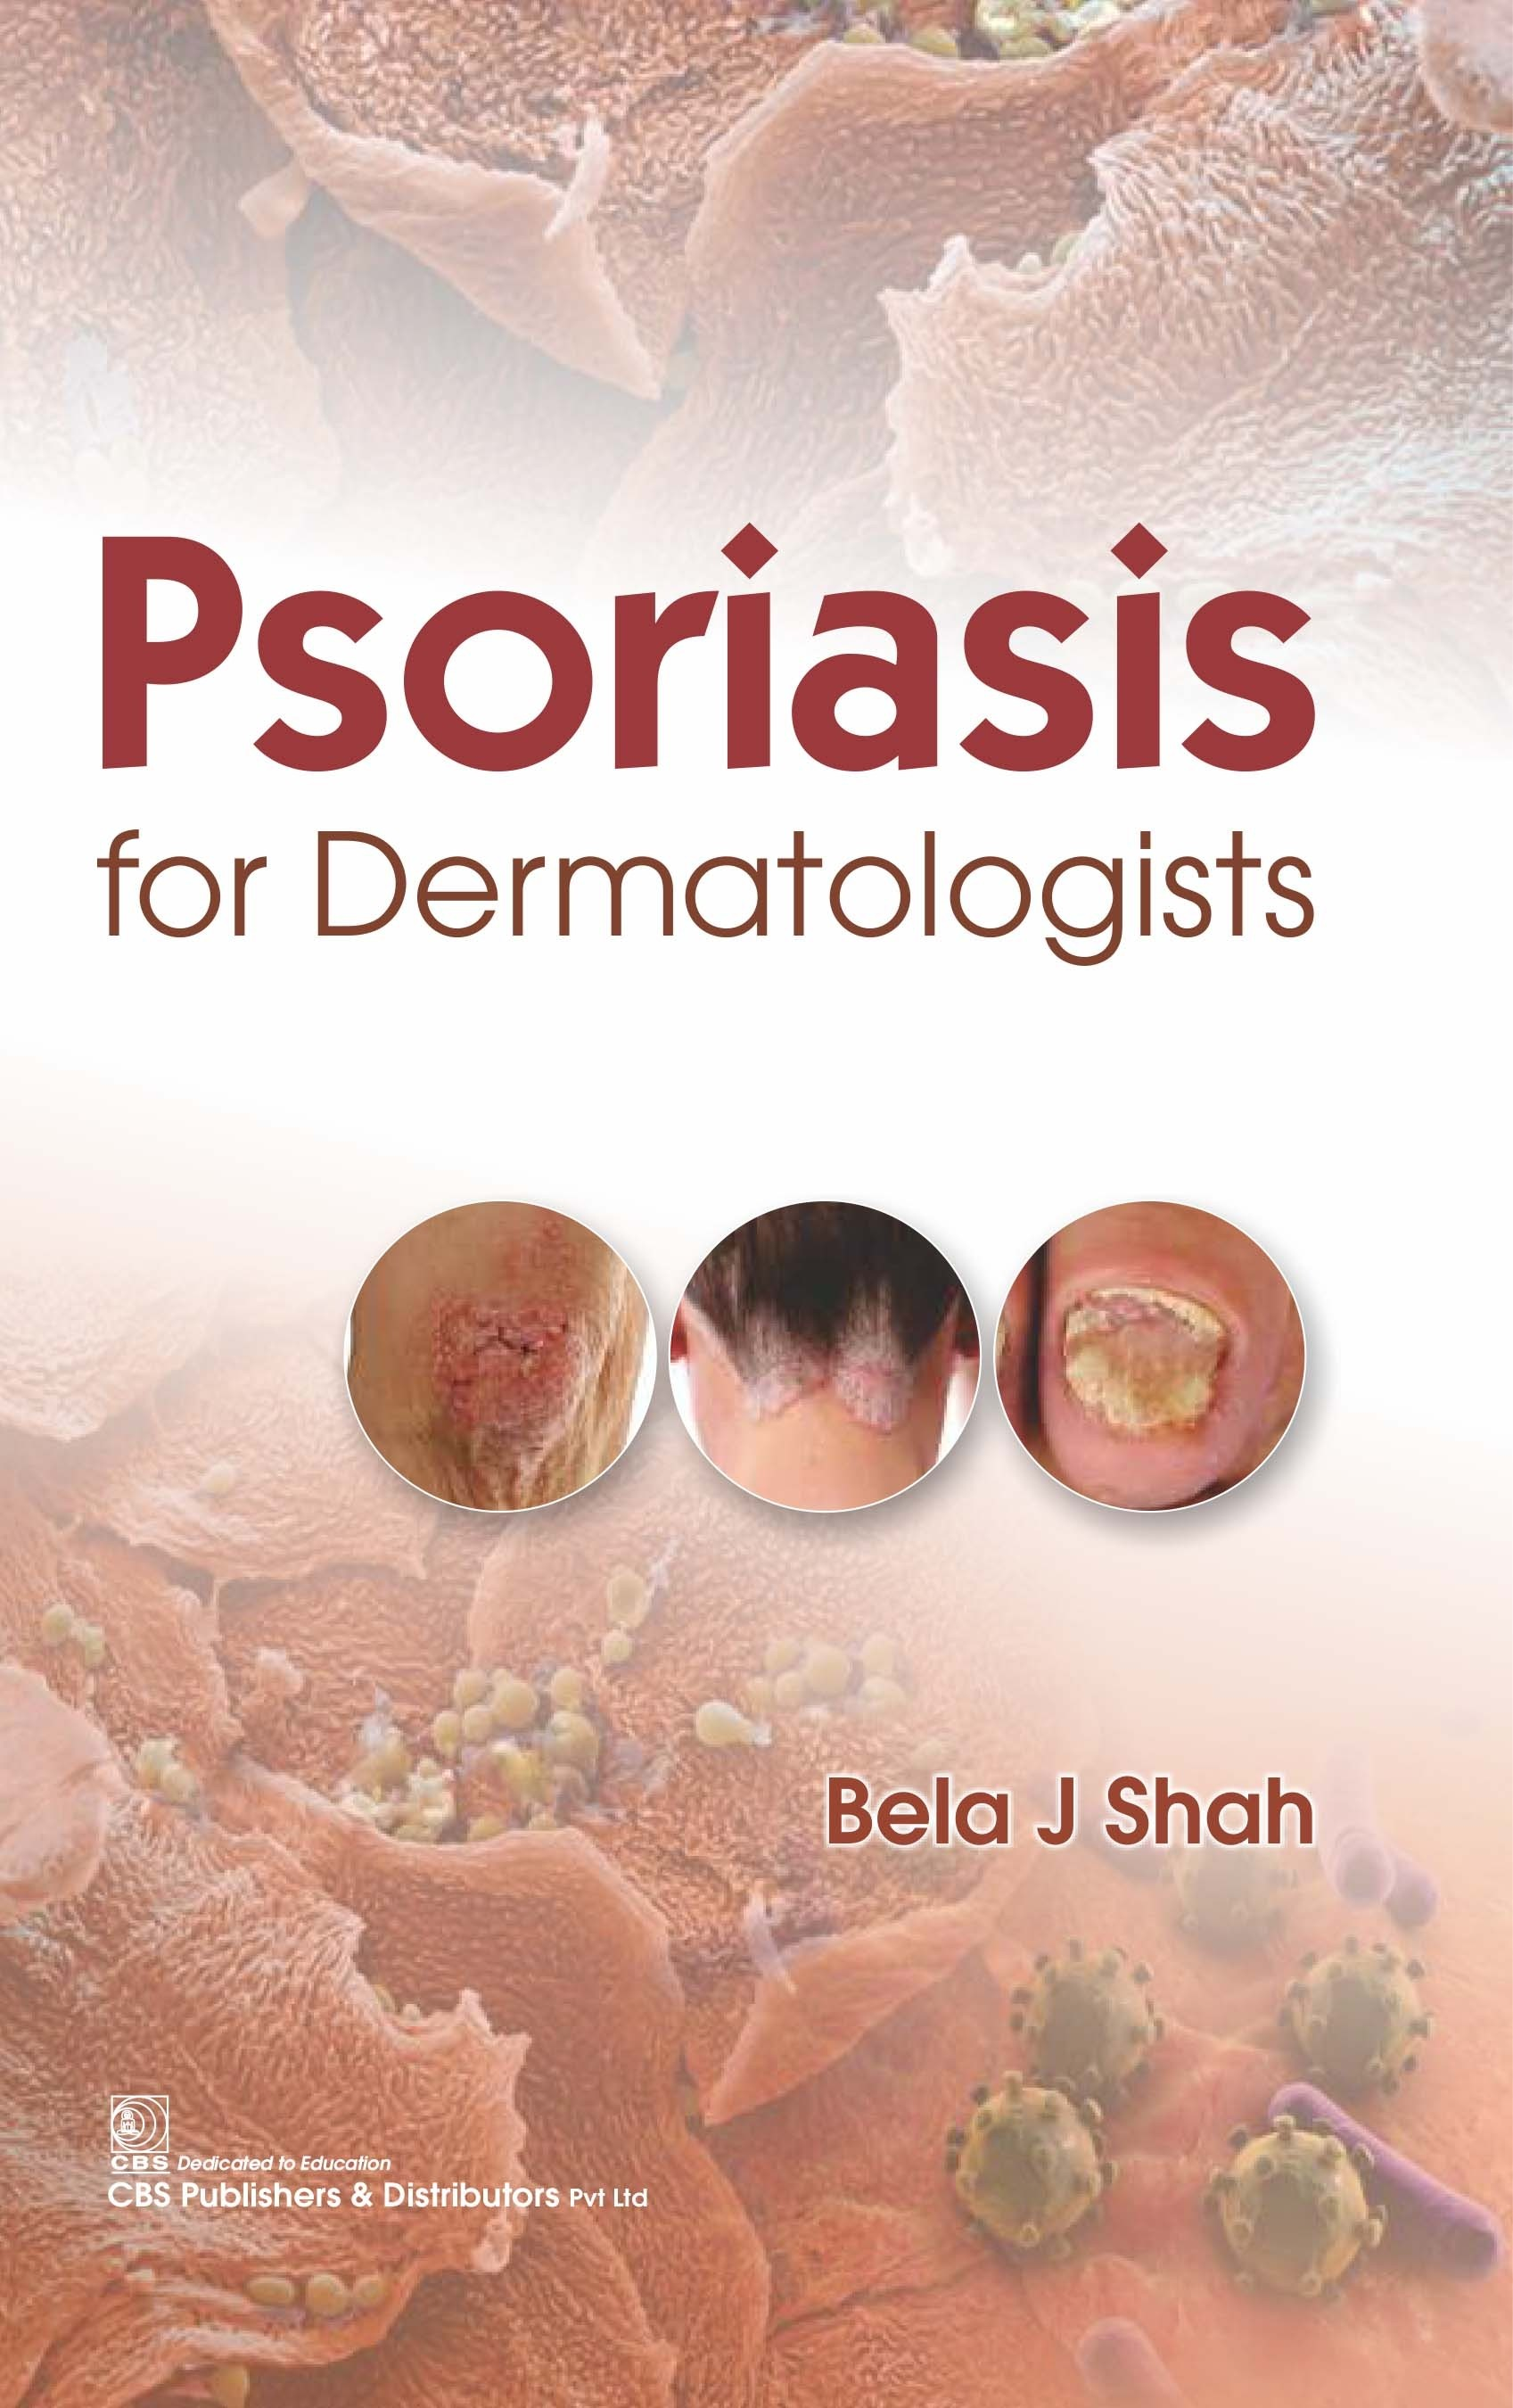 Psoriasis for Dermatologists